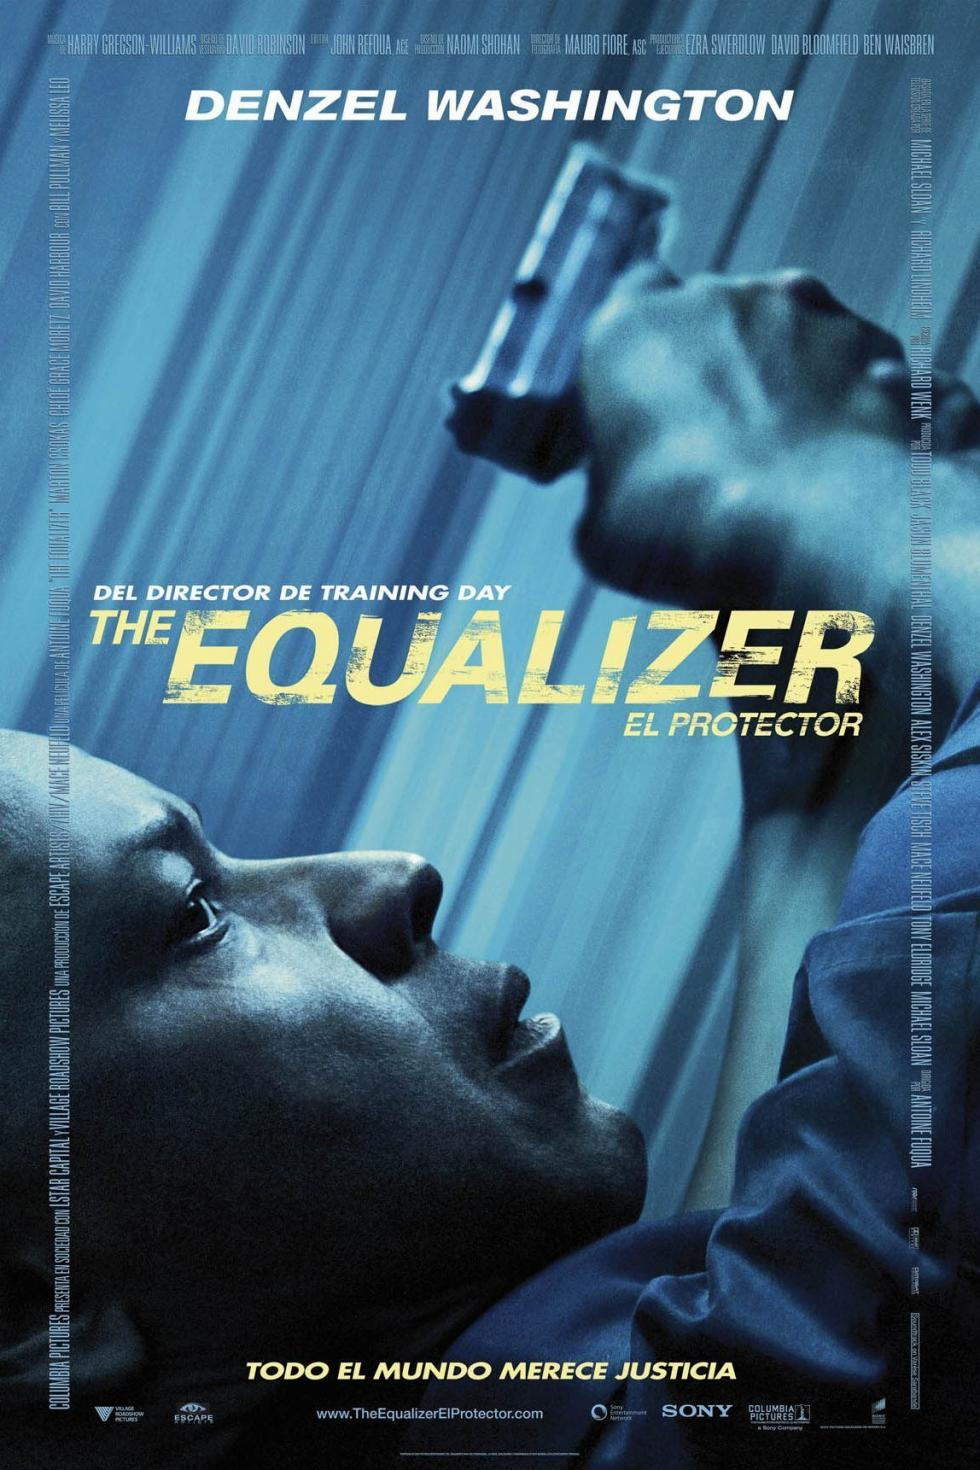 The Equalizer. El protector